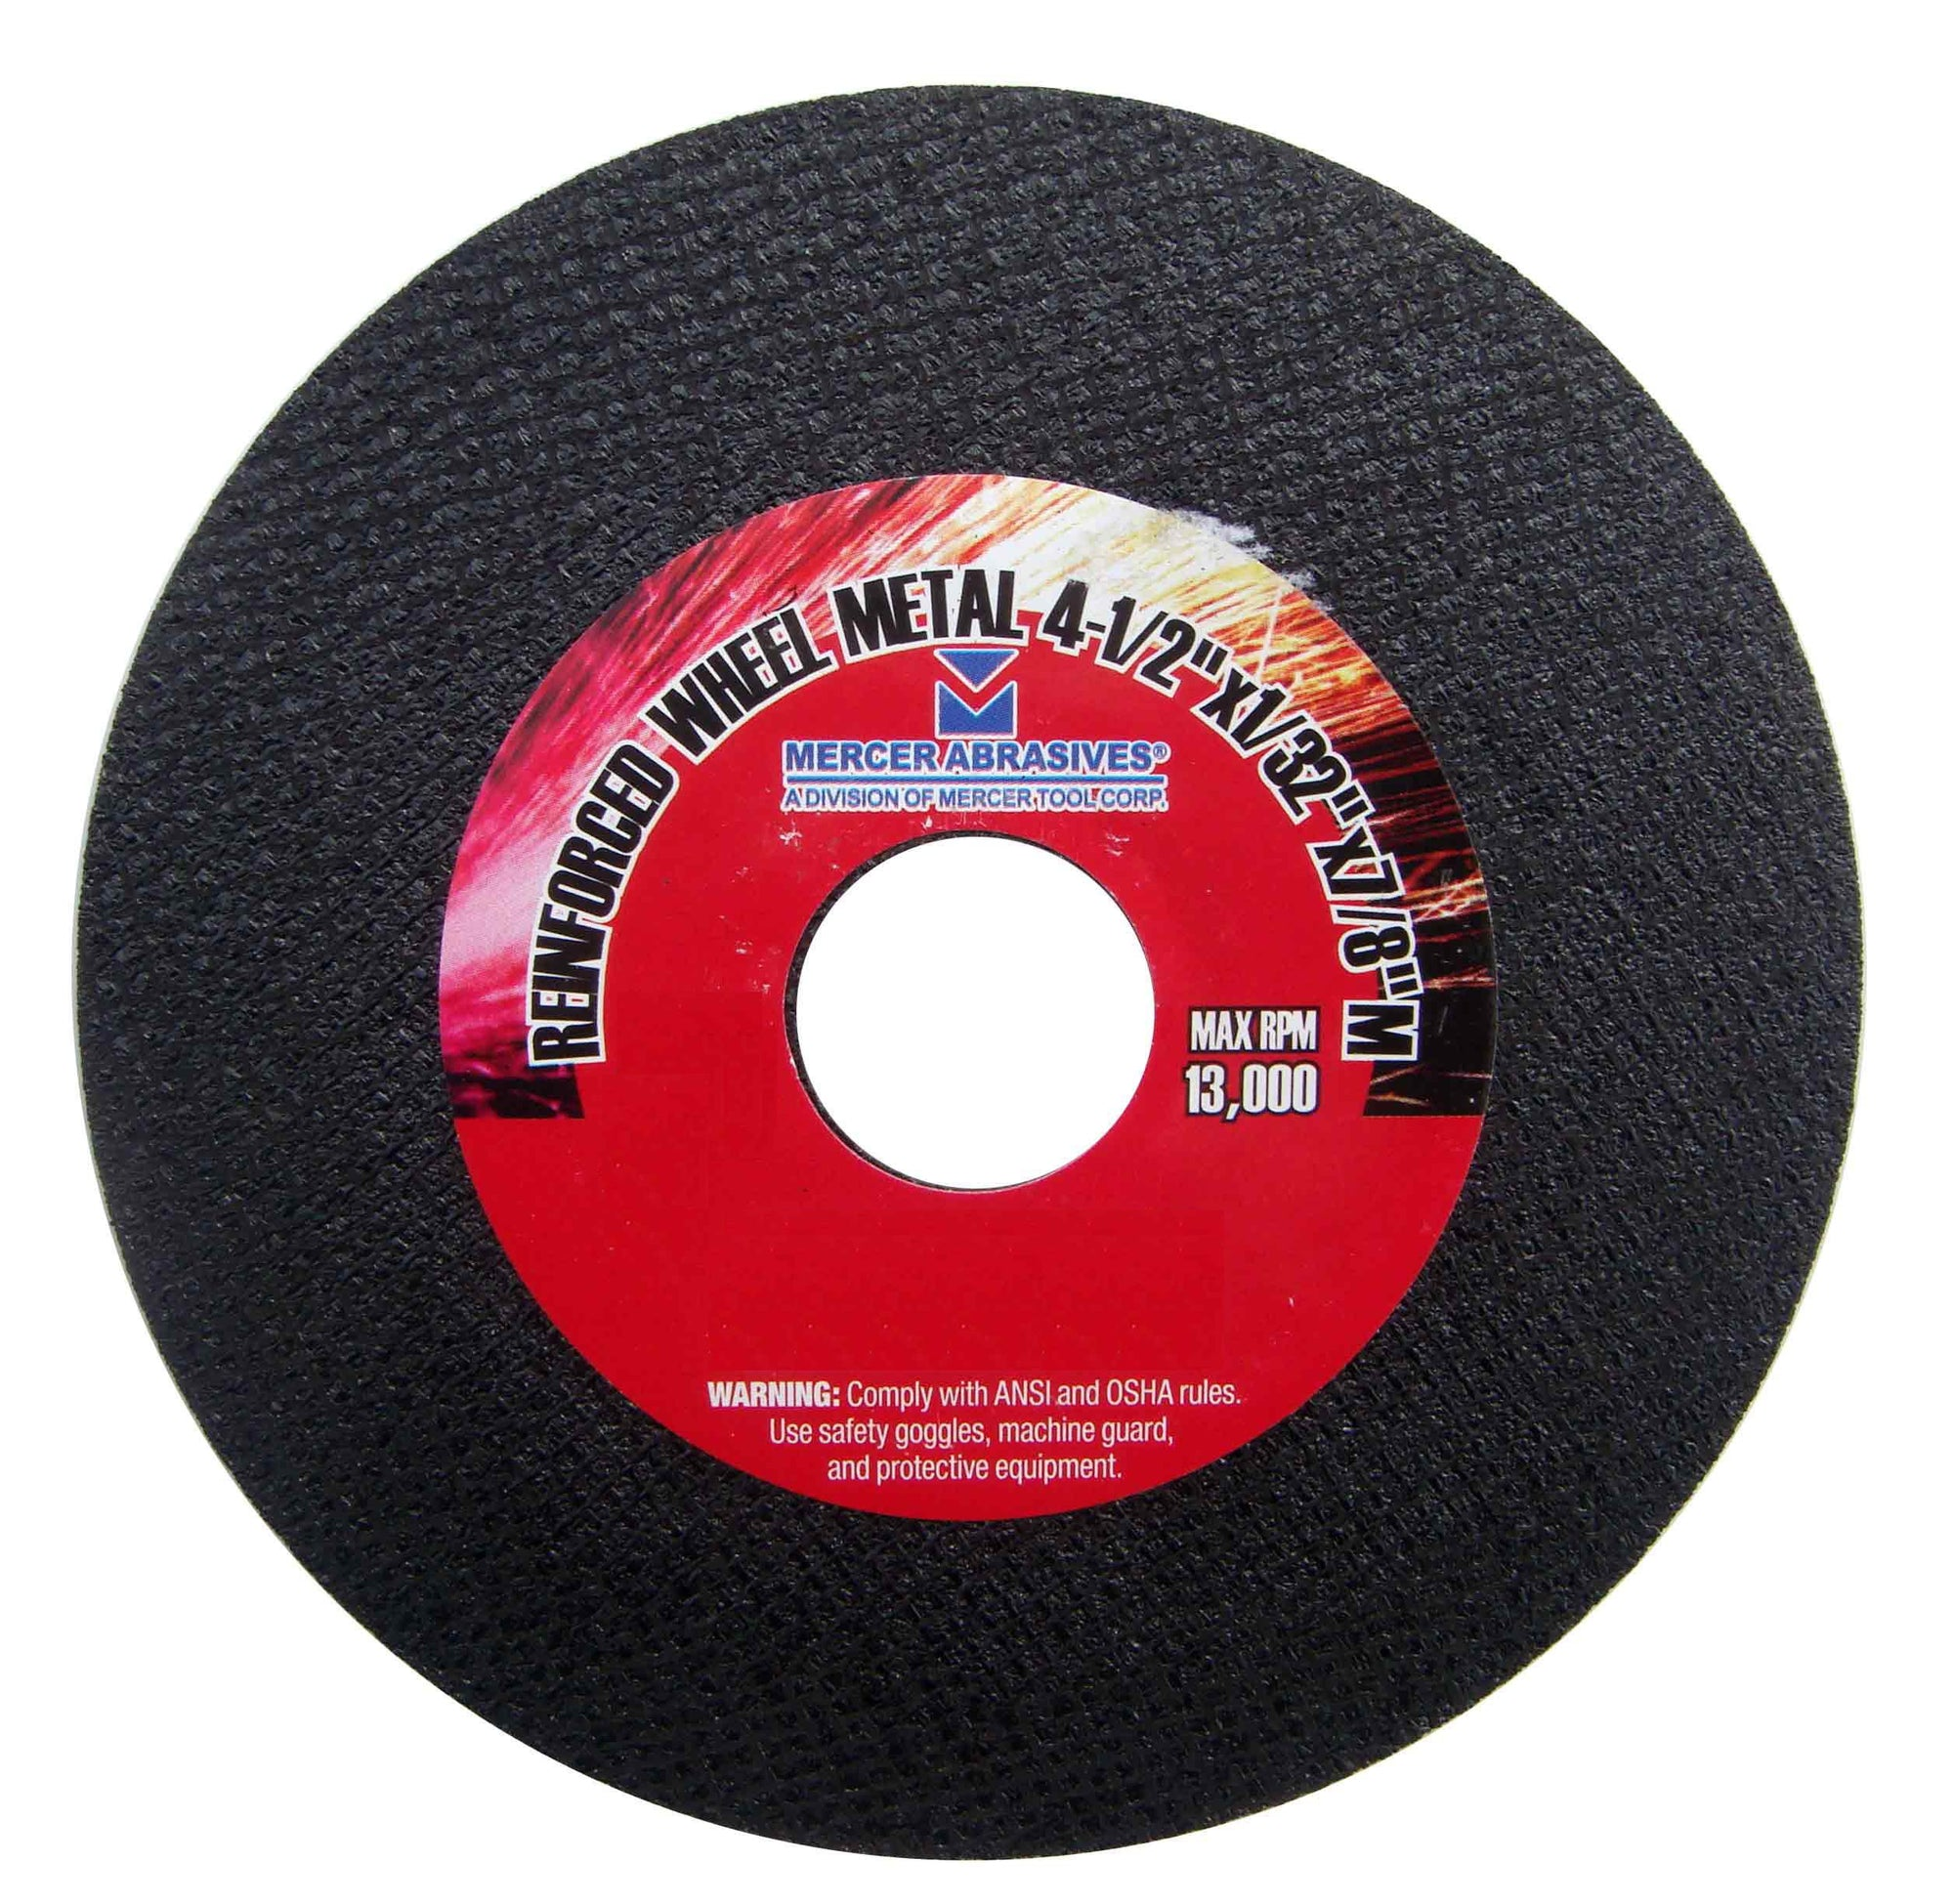 Mercer Abrasives 615060-20 Small Diameter High Speed Fully Reinforced Cut-Off Wheels 4-1/2-Inch by 1/8-Inch by 7/8-Inch C, 20-Pack